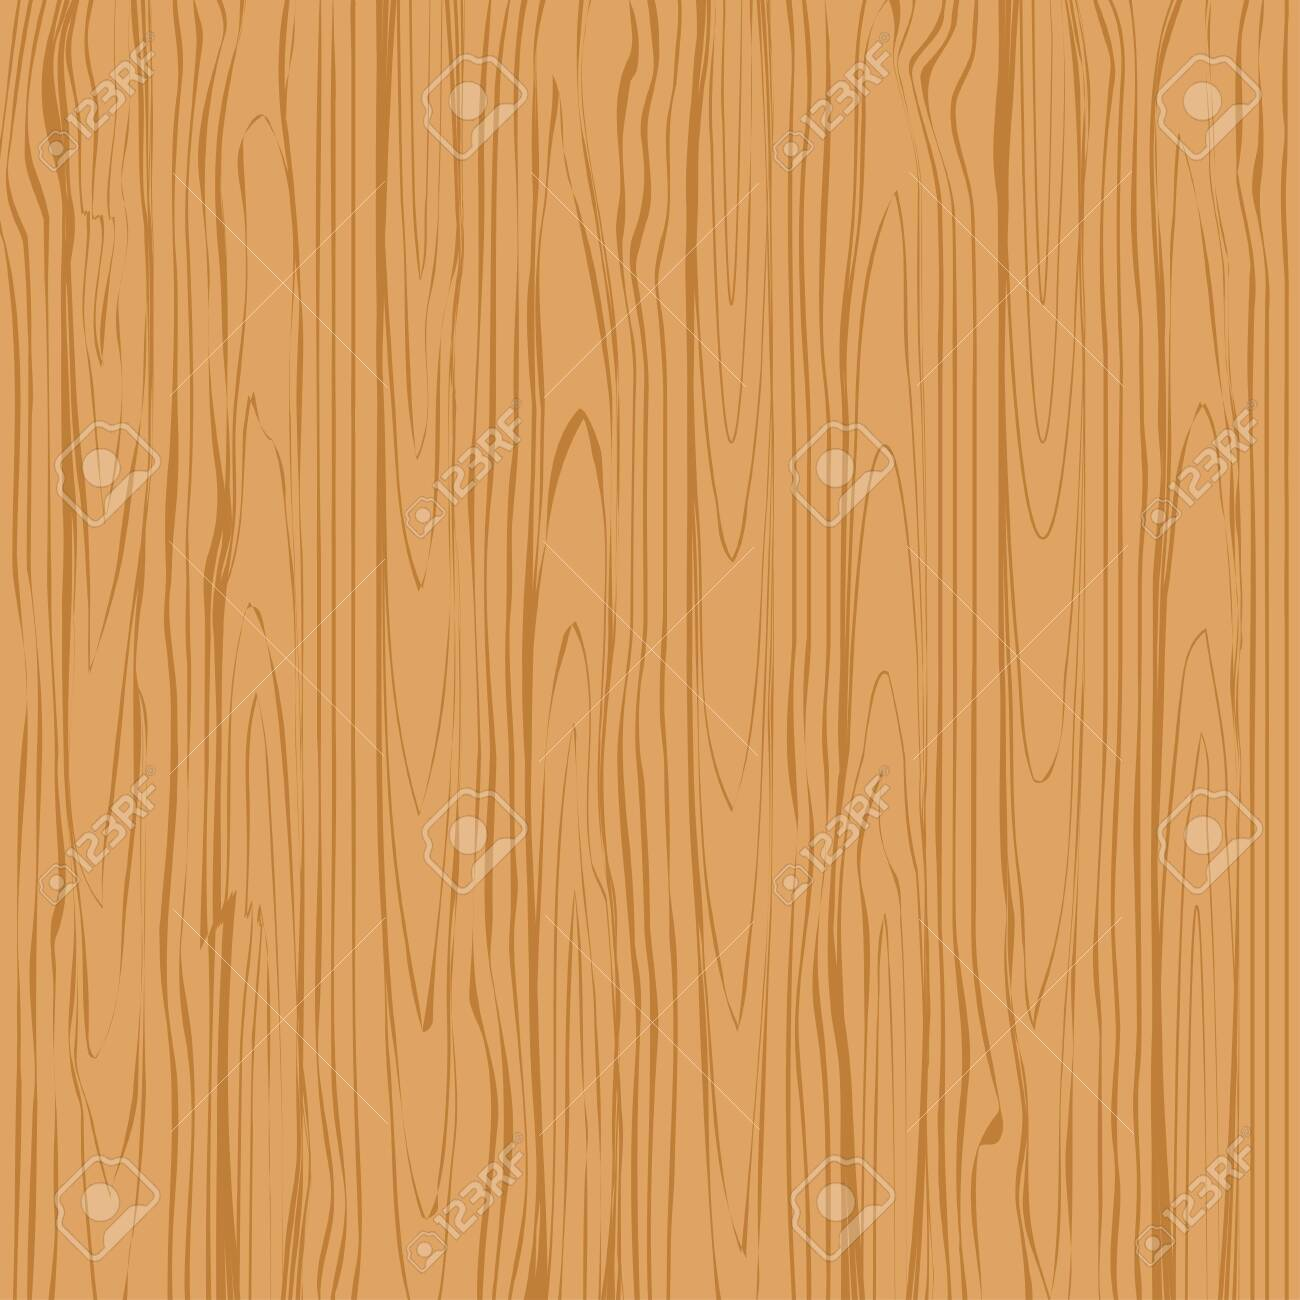 Wood texture background vector. Brown tree surface vector illustration - 138866421